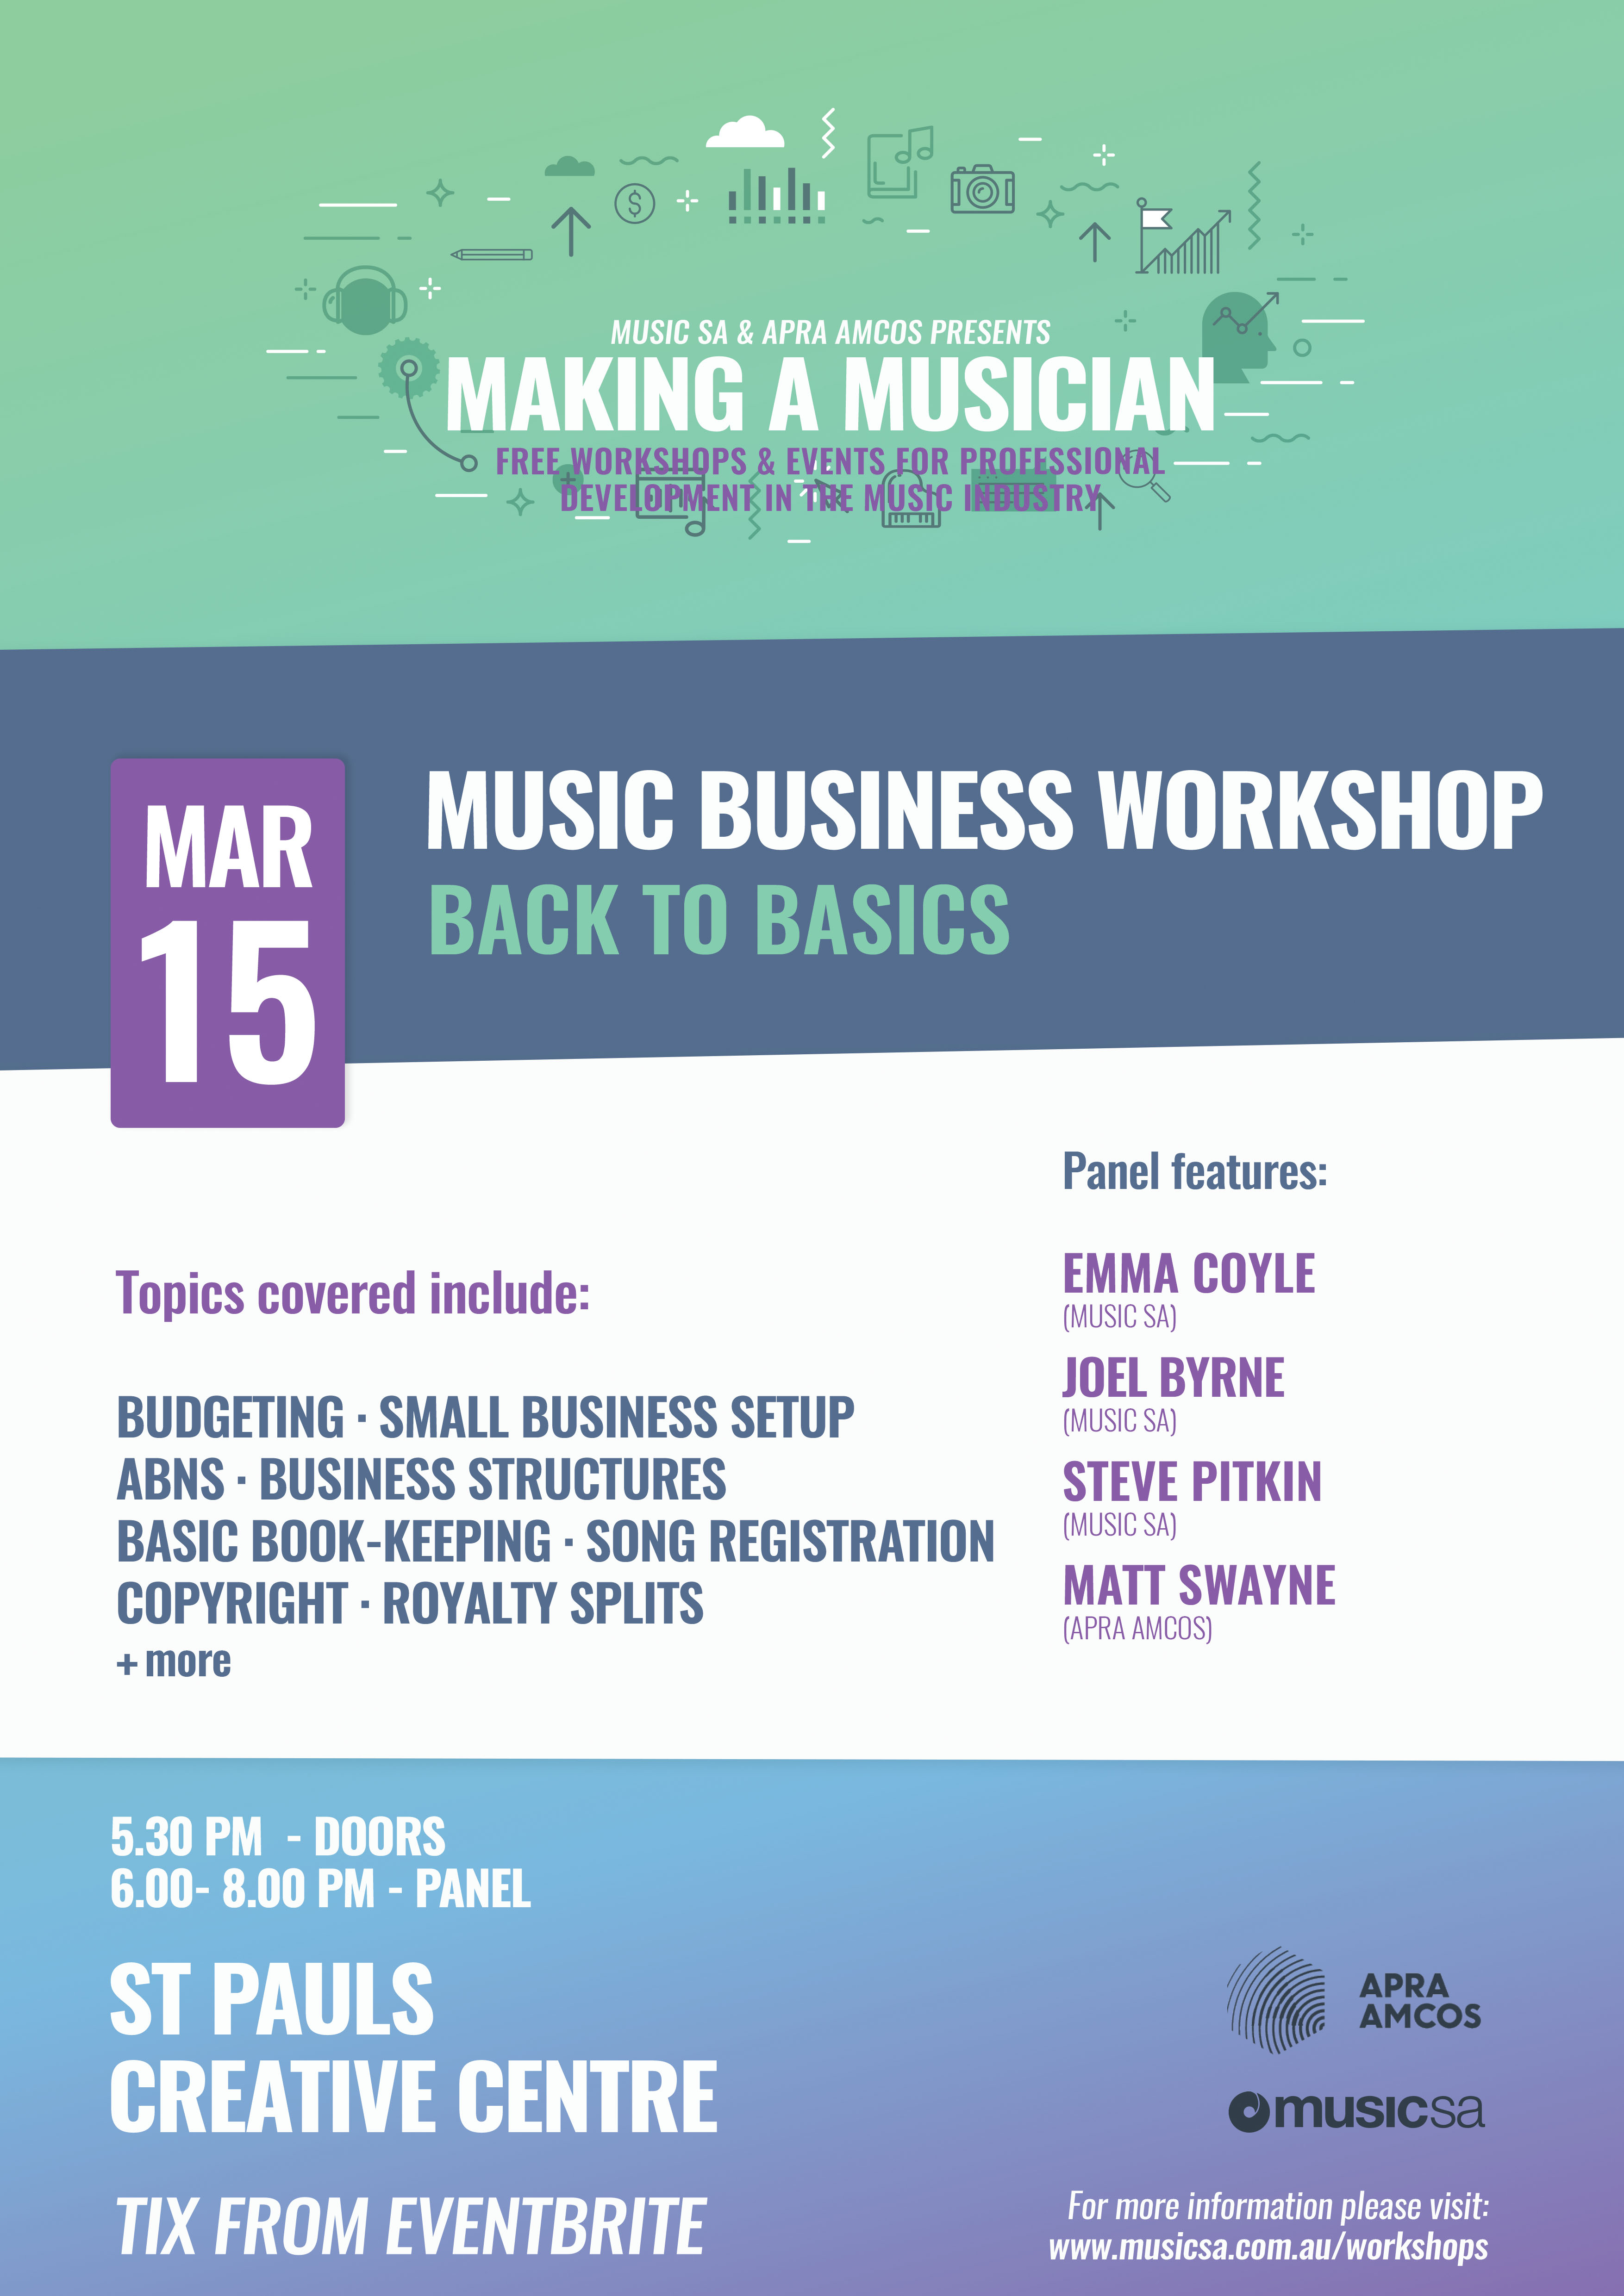 March 15 back to basics